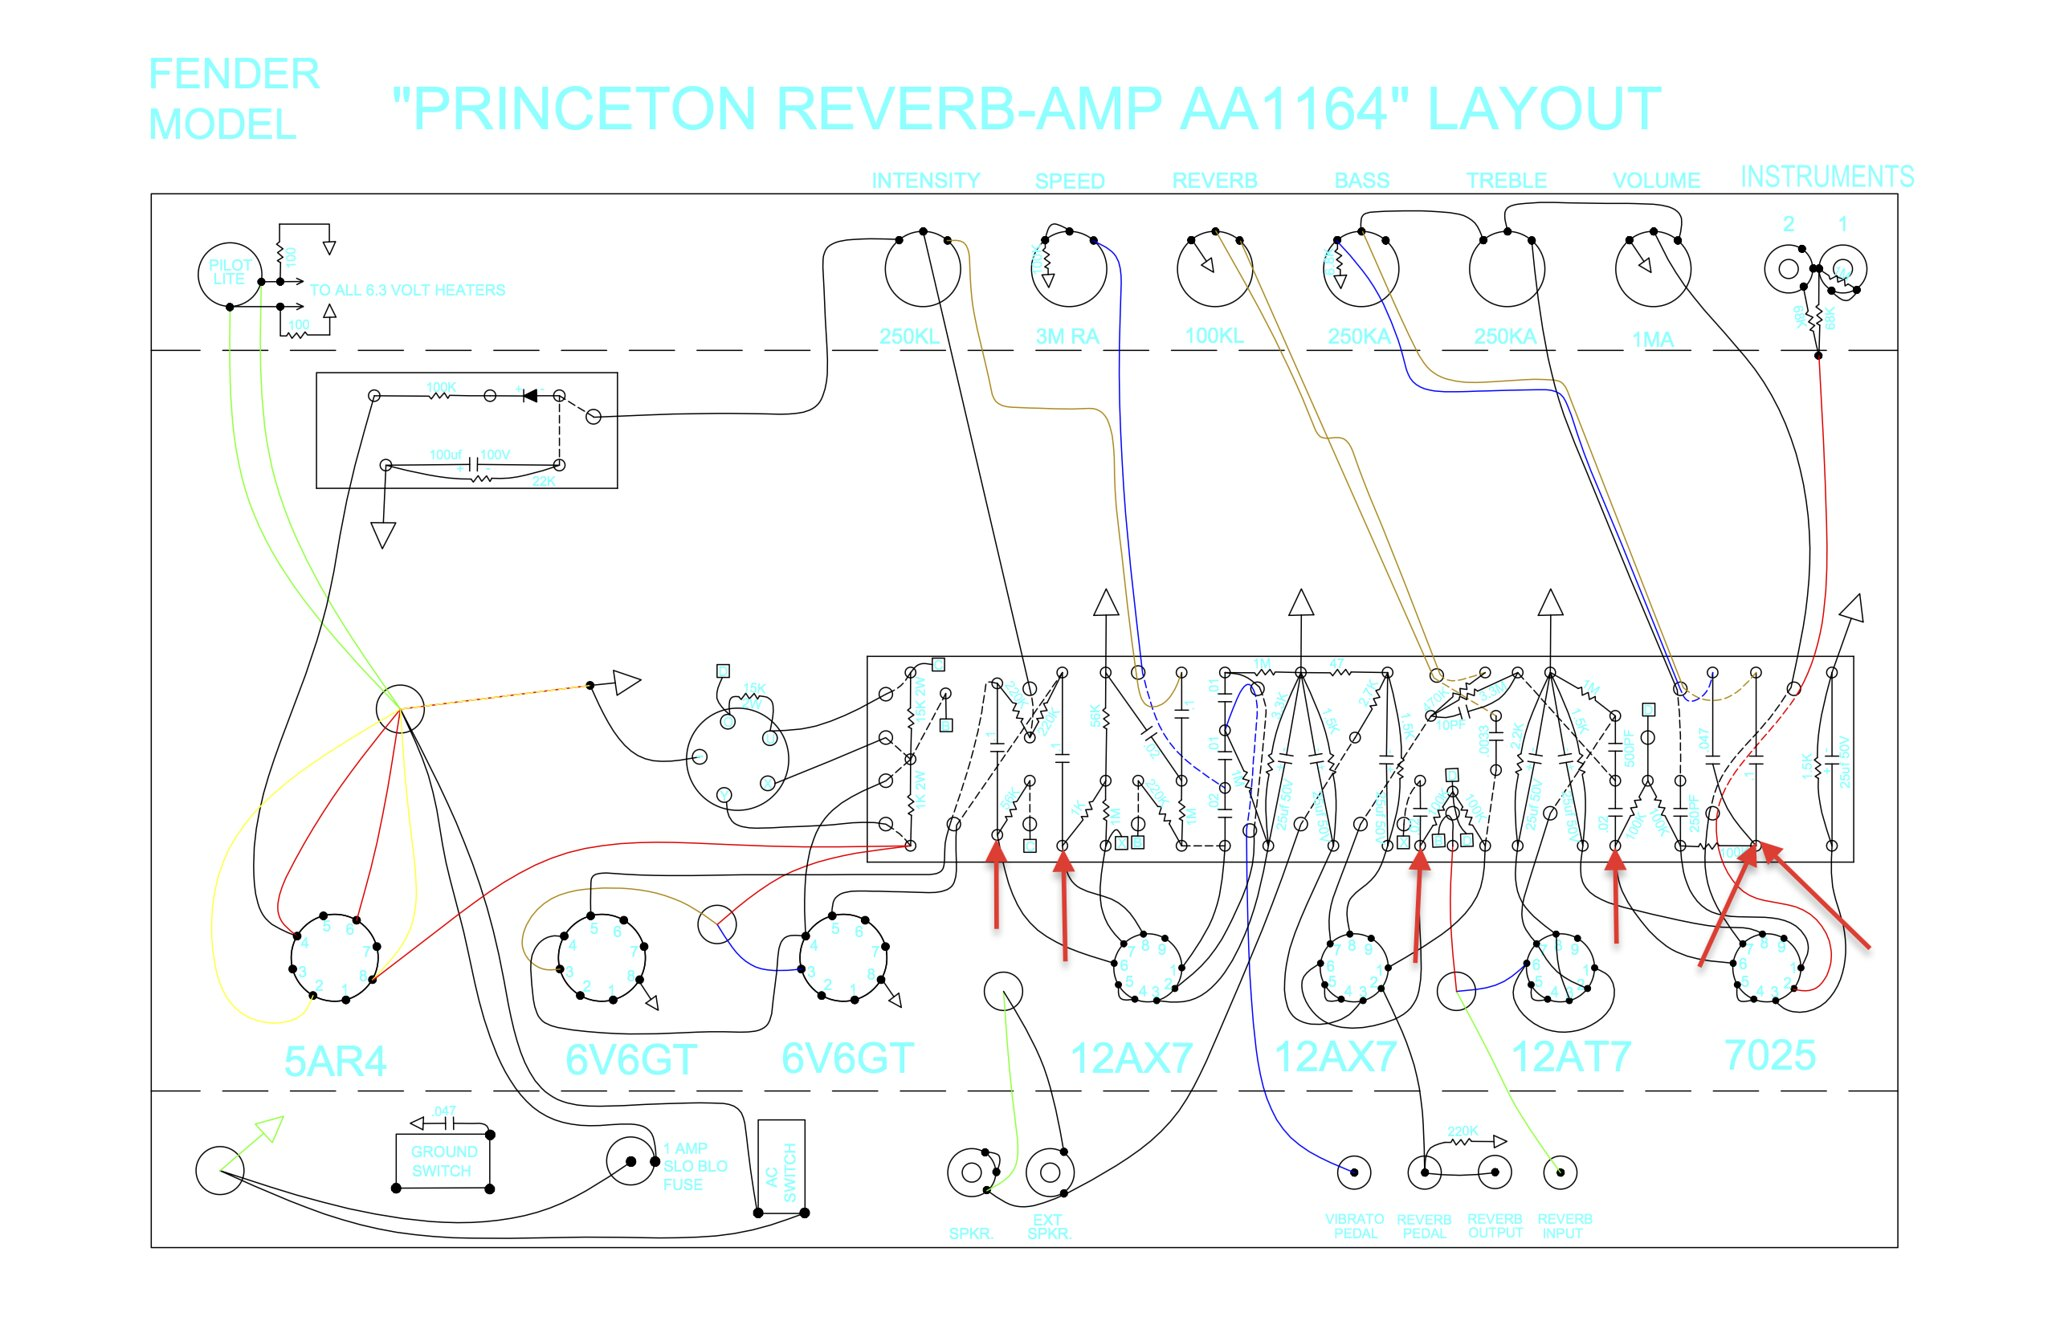 princeton reverb build (blackface) the gear page 3-way switch wiring diagram fender i have indicated with red arrows in the wiring diagram, which side i plan to put the \